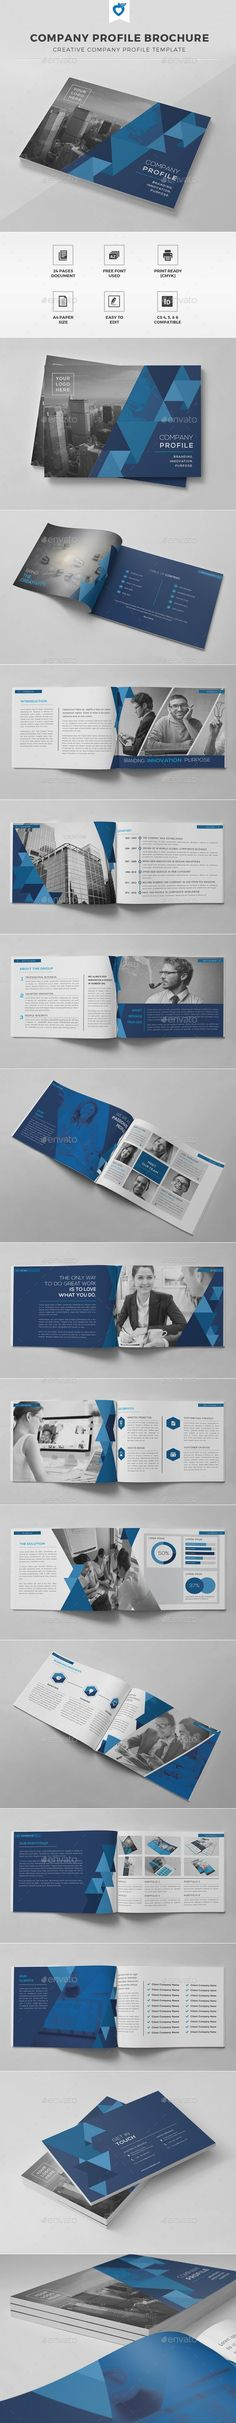 Creative Company Profile on Behance u2026 Pinteresu2026 - profile company template